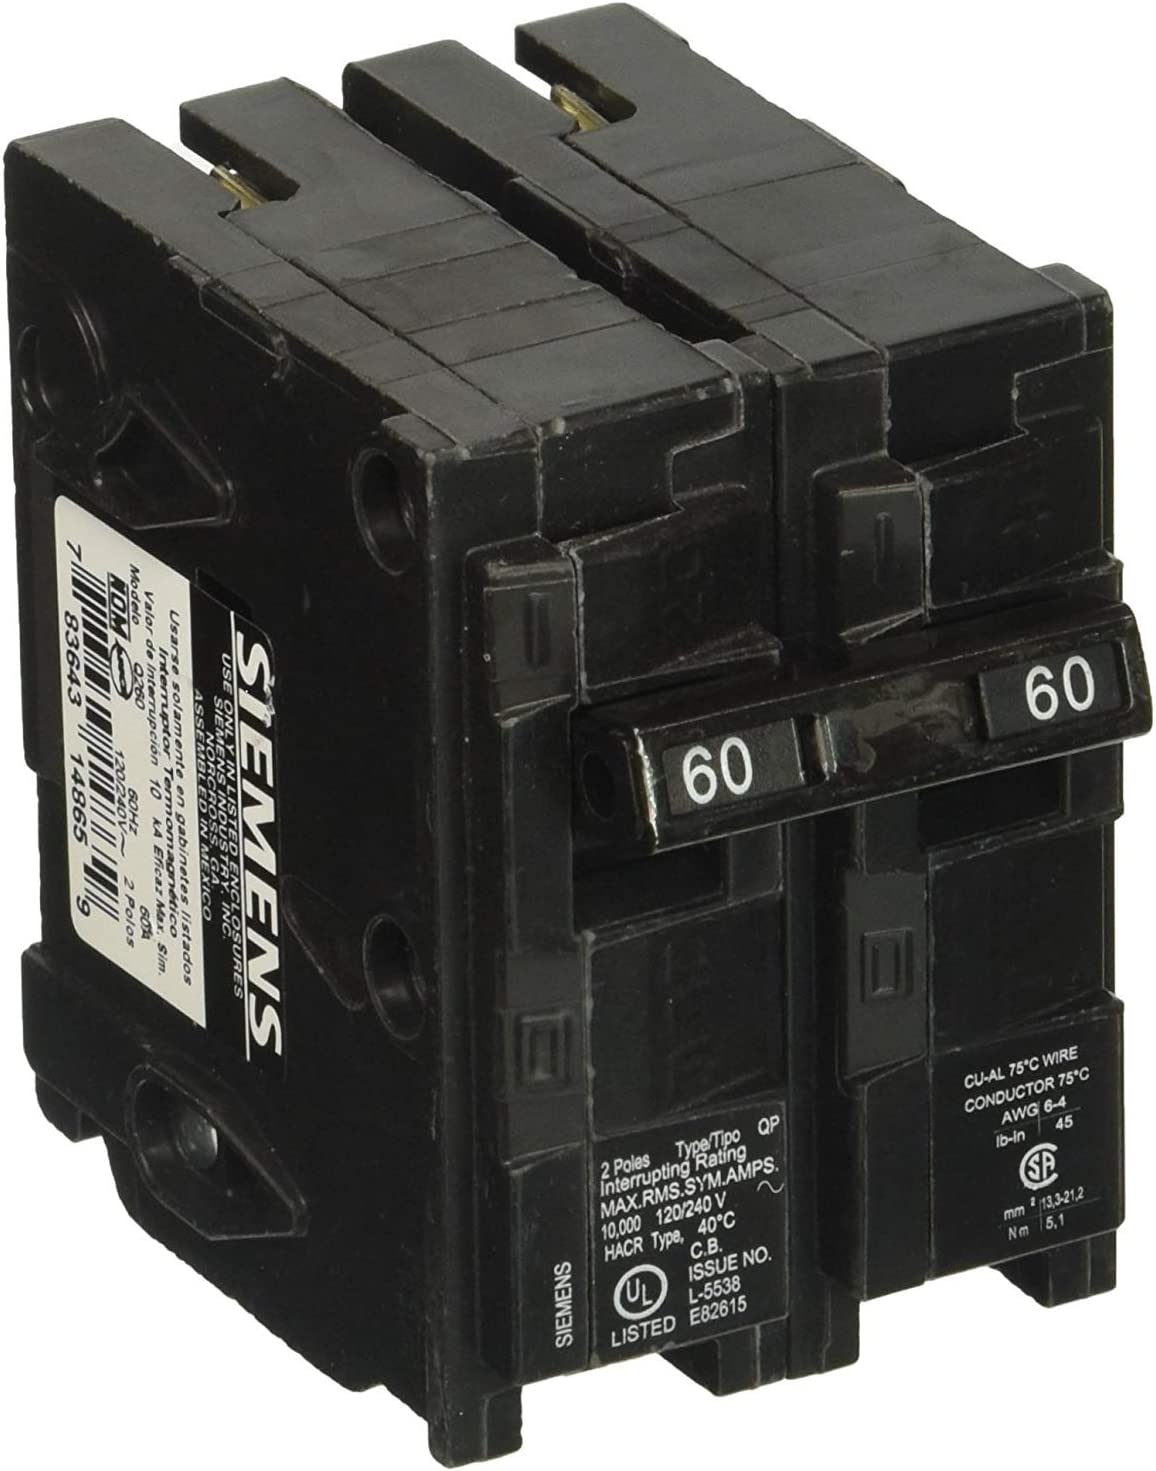 Q260 60-Amp Double Pole Type QP Circuit Breaker - - Amazon.com | Two 60 Amp Fuse Box |  | Amazon.com